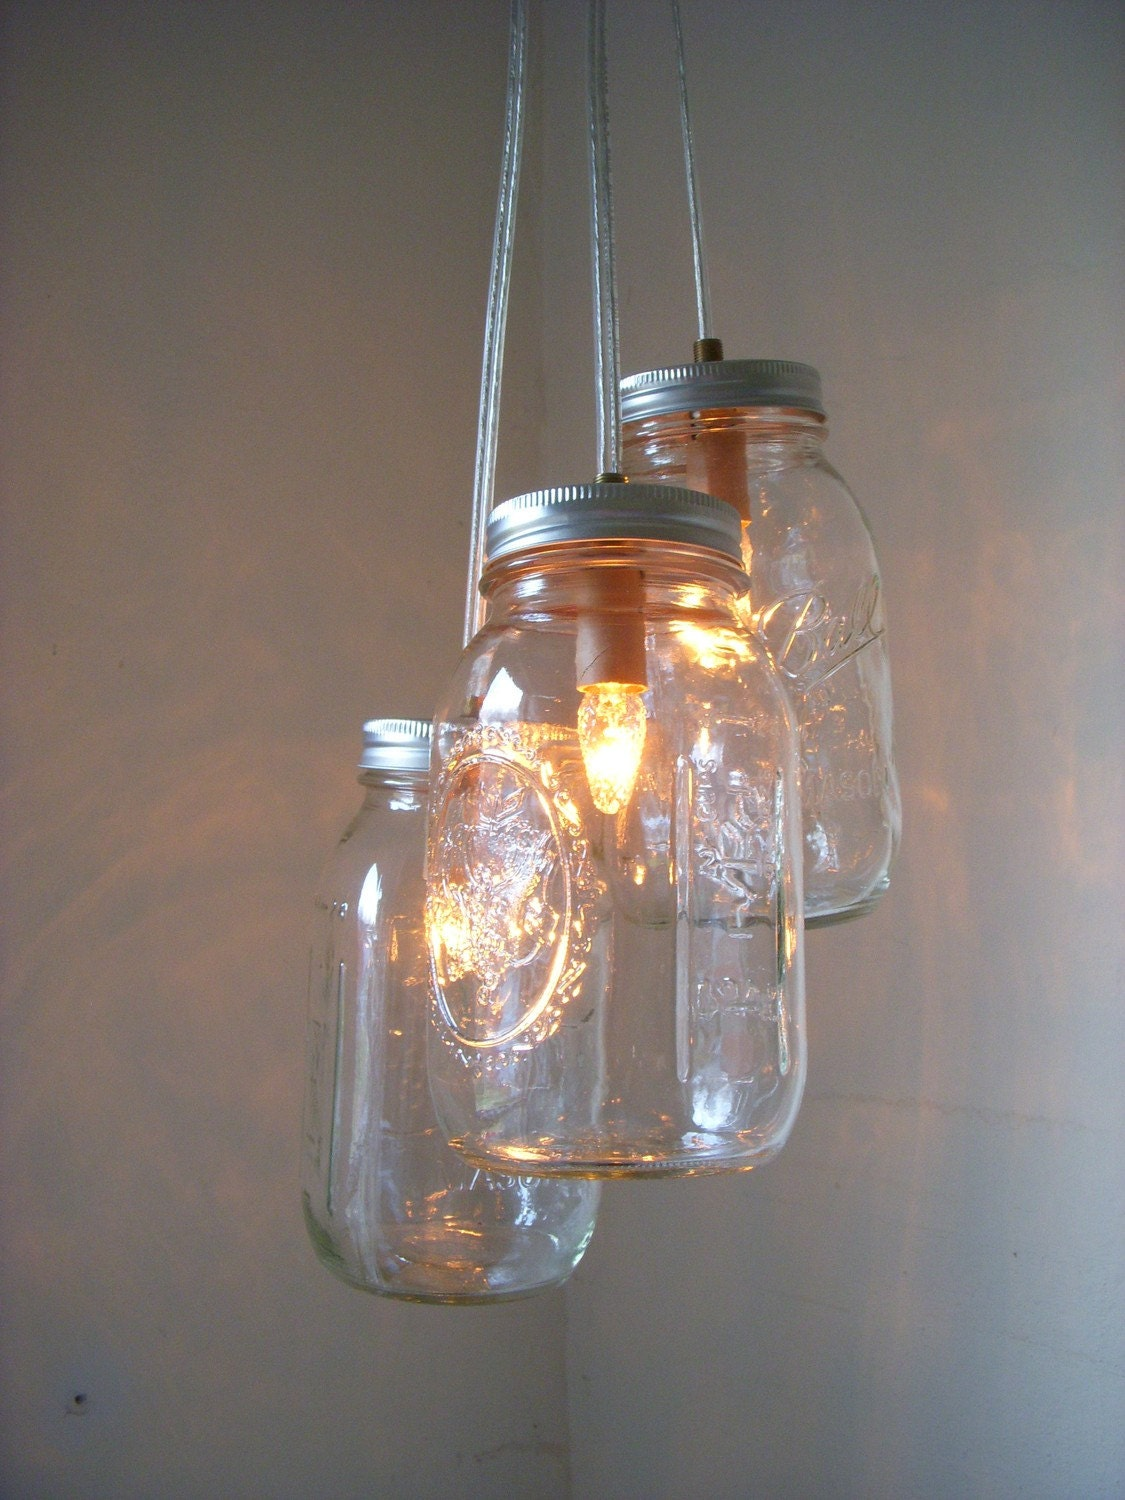 Summer Nights Shimmering Shooting Stars Sparkling Clear Quart Glass Fruit Harvest Ball Mason Jar Lights Chandelier - UpCycled ReCycled Hanging Pendant Lighting Fixture Light - Decrotive Wedding Accent - April Showers - May Flowers